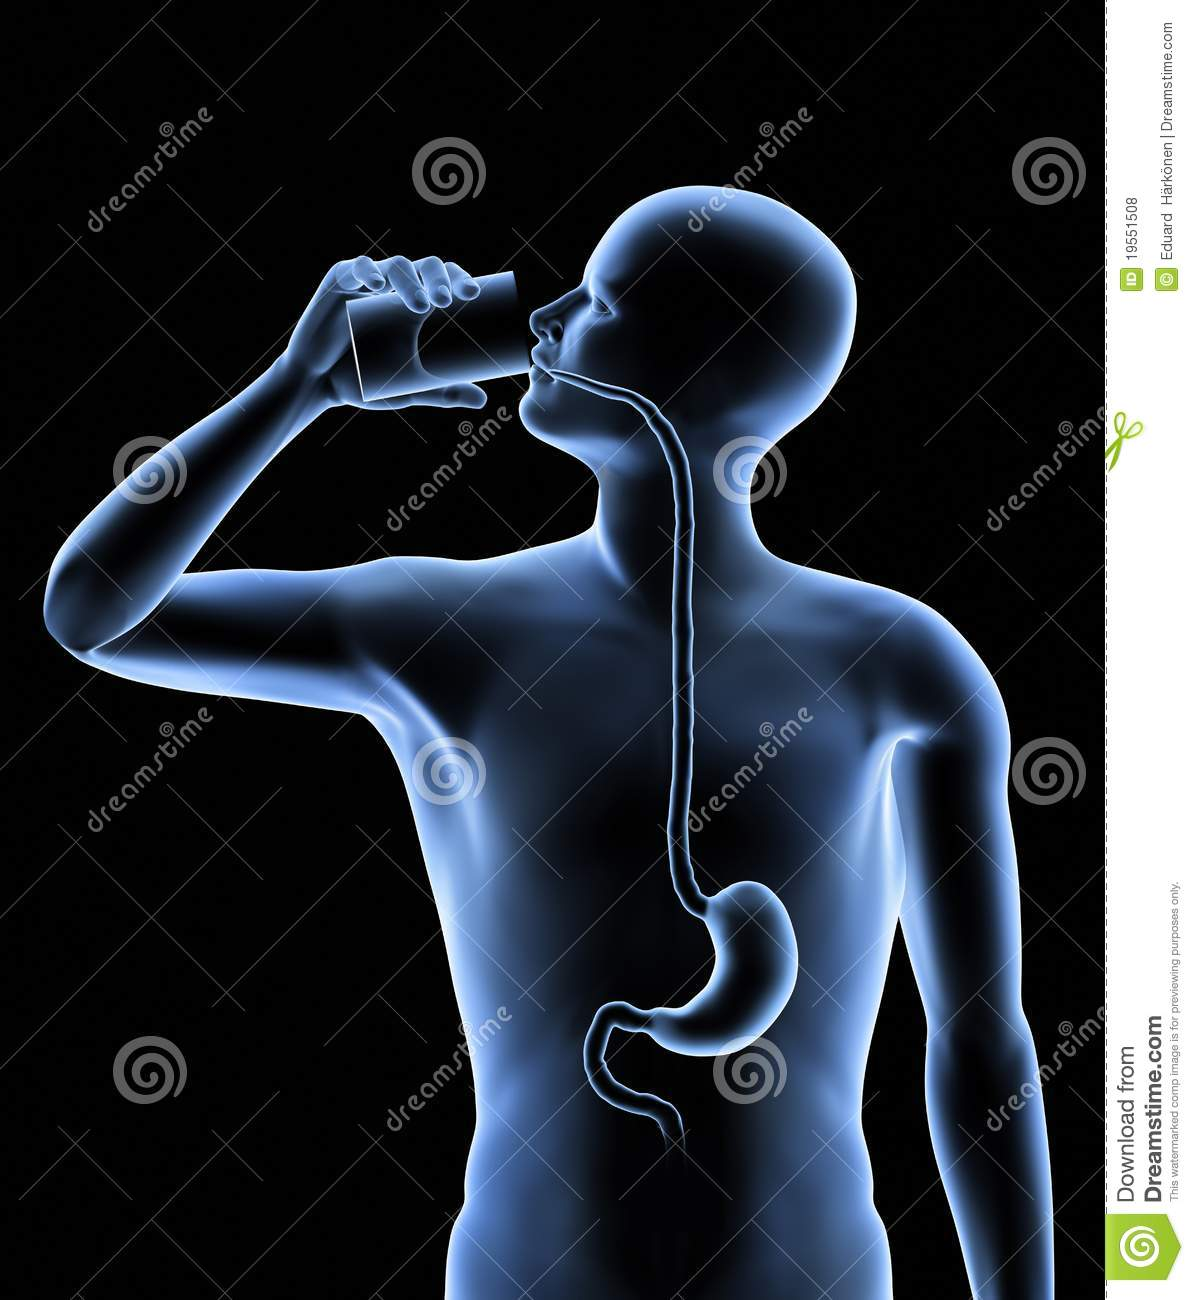 http://www.dreamstime.com/royalty-free-stock-photos-human-body-stomach-image19551508